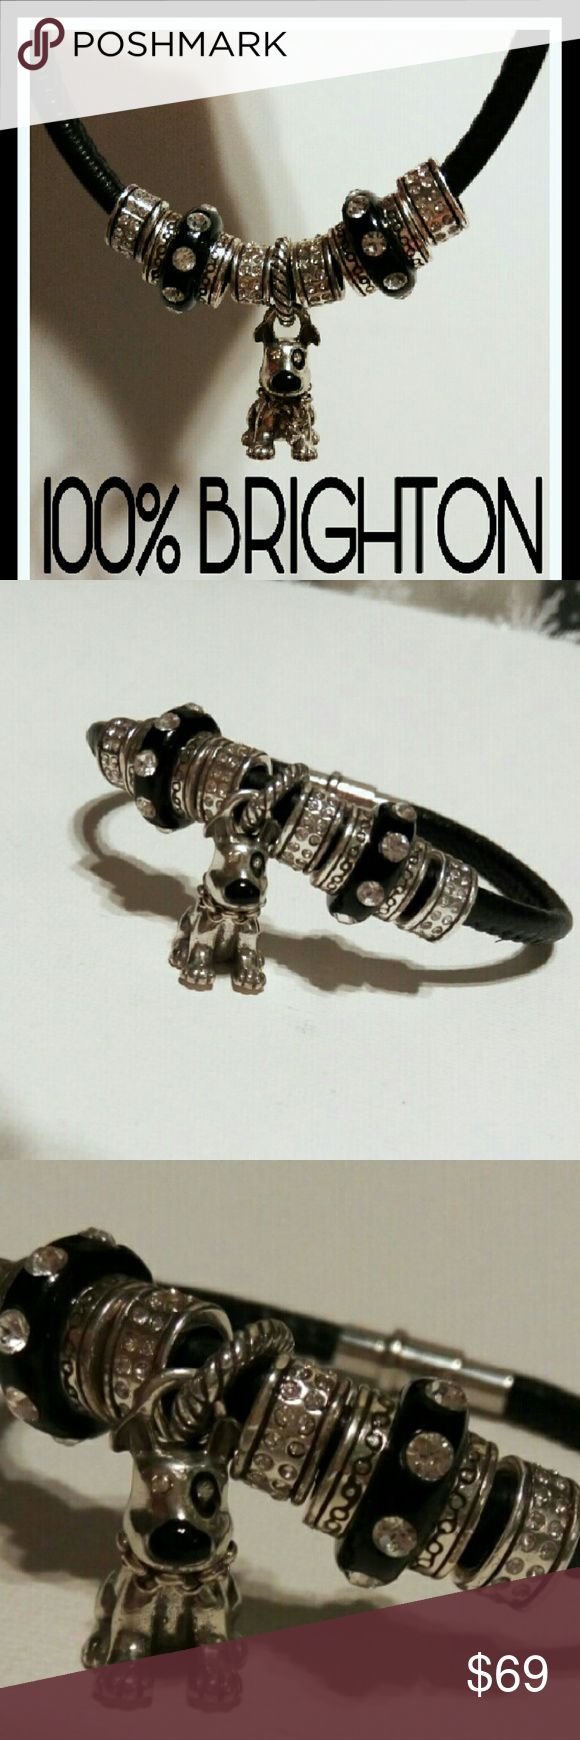 Unique 100% Authentic BRIGHTON Bracelet & Charms Lightly used, one of a kind BRIGHTON bracelet & charms.   Extremely cute BRIGHTON dog charm  w/ black nose and eye flanked by silver and black beads. Brighton Jewelry Bracelets